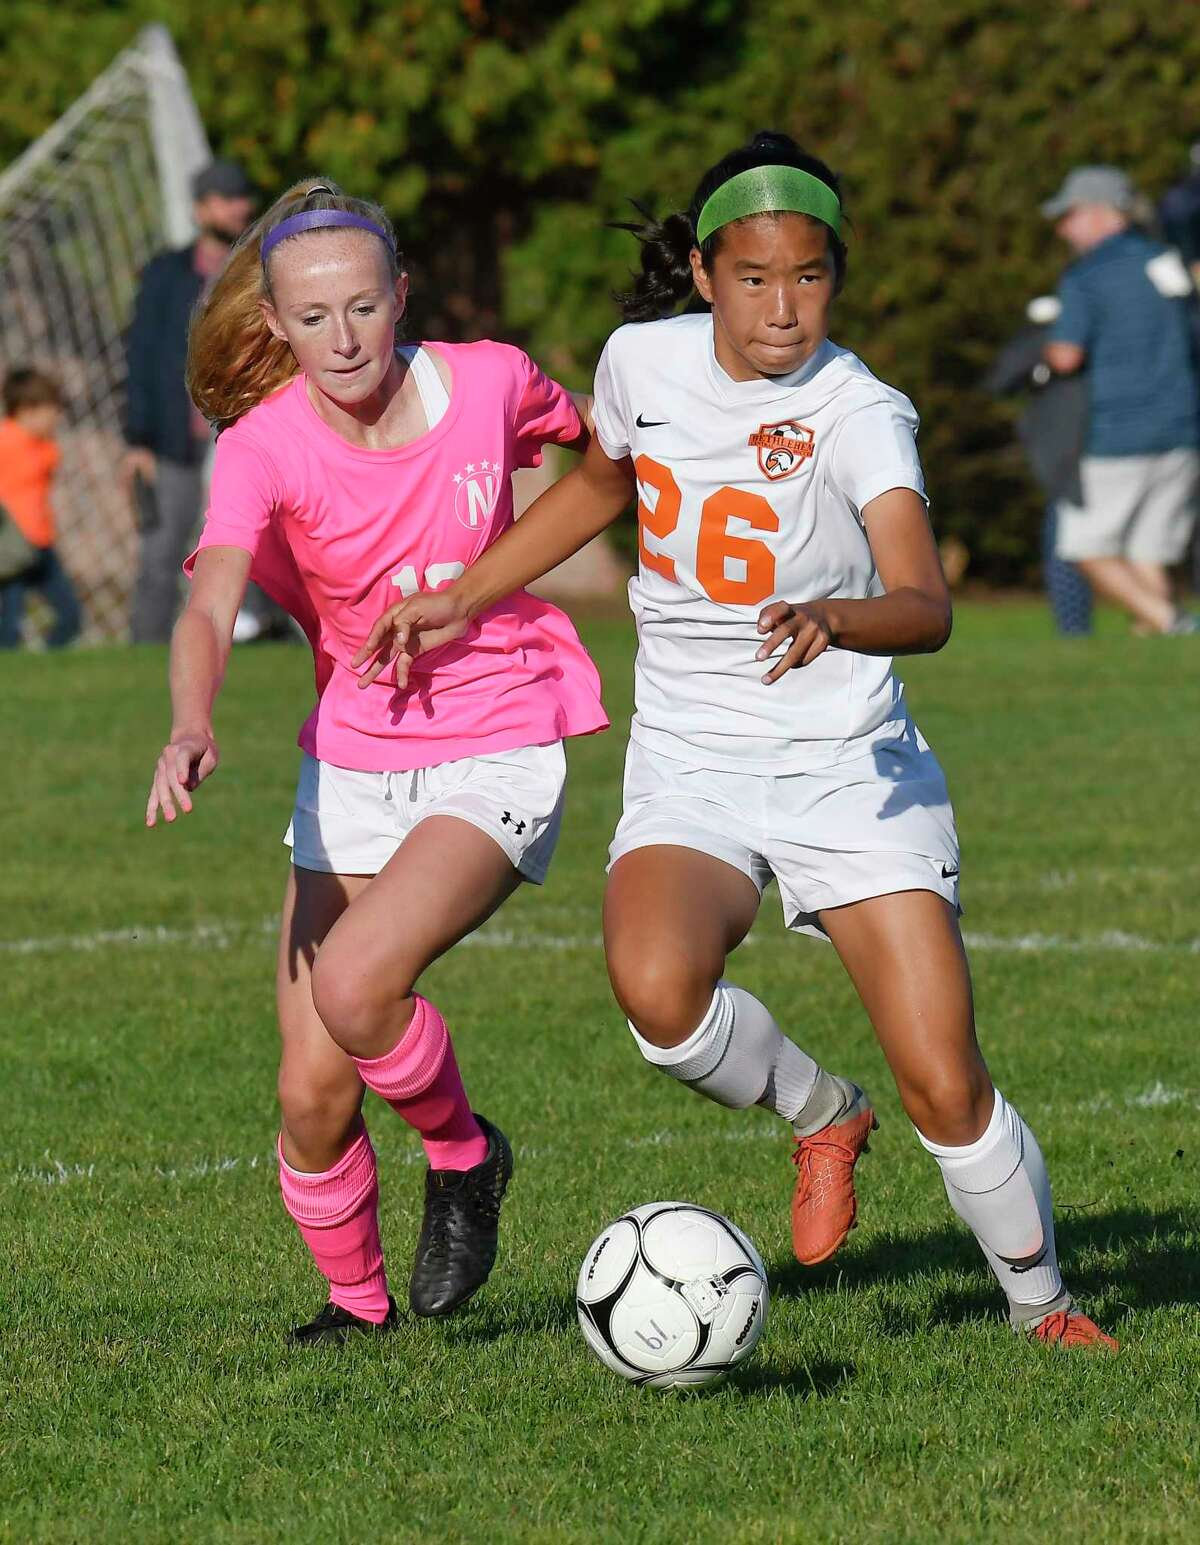 Niskayuna's Addiie Zimmerman( 13 and Bethlehem's Marissa Mastracco battle for control of the ball during a girls' Section II high school soccer game in Niskayuna, N.Y., Thursday, Oct. 10, 2019. (Hans Pennink / Special to the Times Union)